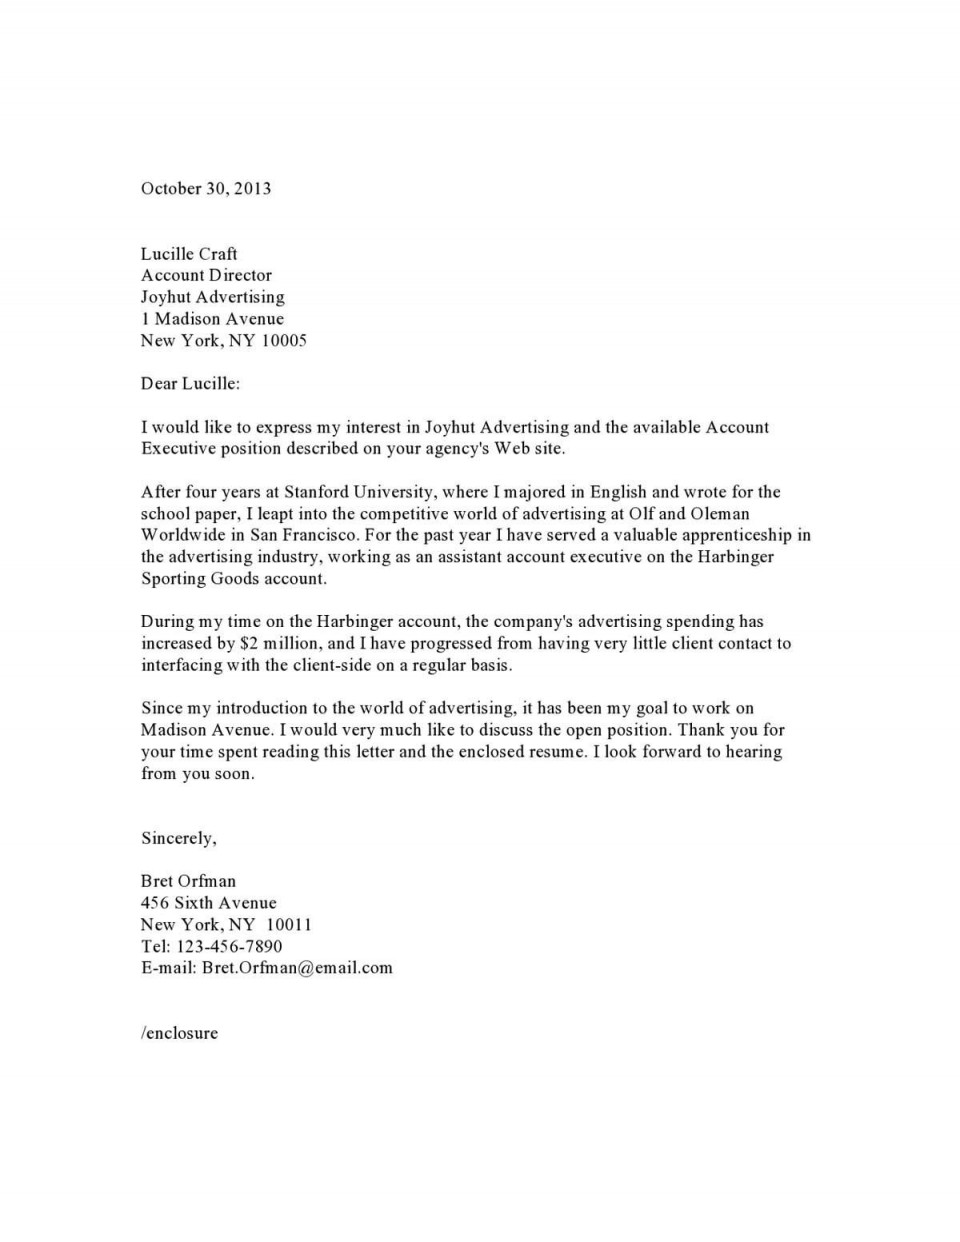 005 Best Good Cover Letter Template Example  Sample Nz Free960